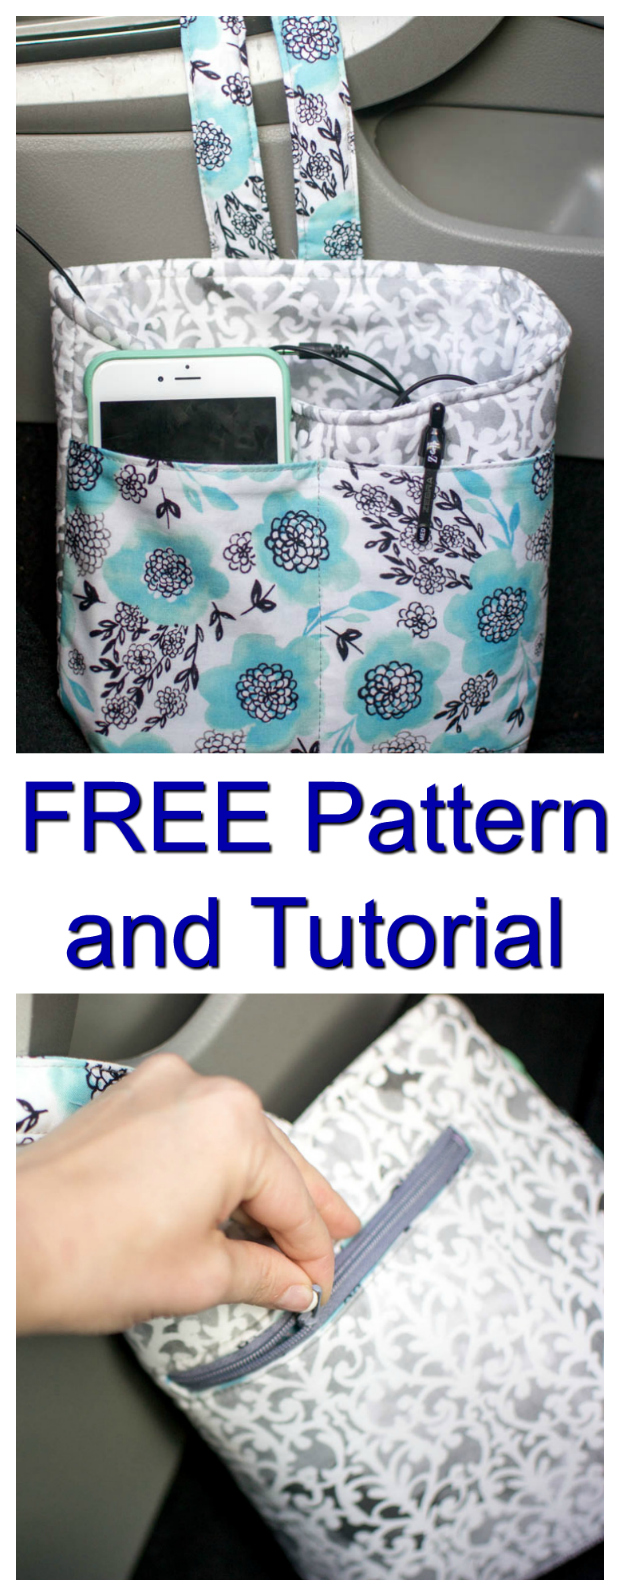 With this FREE pattern and tutorial, you can make this handy Car Diddy Bag for organizing your stuff in your car. The Car Diddy Bag keeps everything you need nice and handy and organized. It's specifically designed to hold your phone in one of the outside open pockets, maybe your phone cord, some pens etc. At the back of the bag, there is a welt zipper pocket where you can stash some cash or an emergency credit card in case you forget your purse.